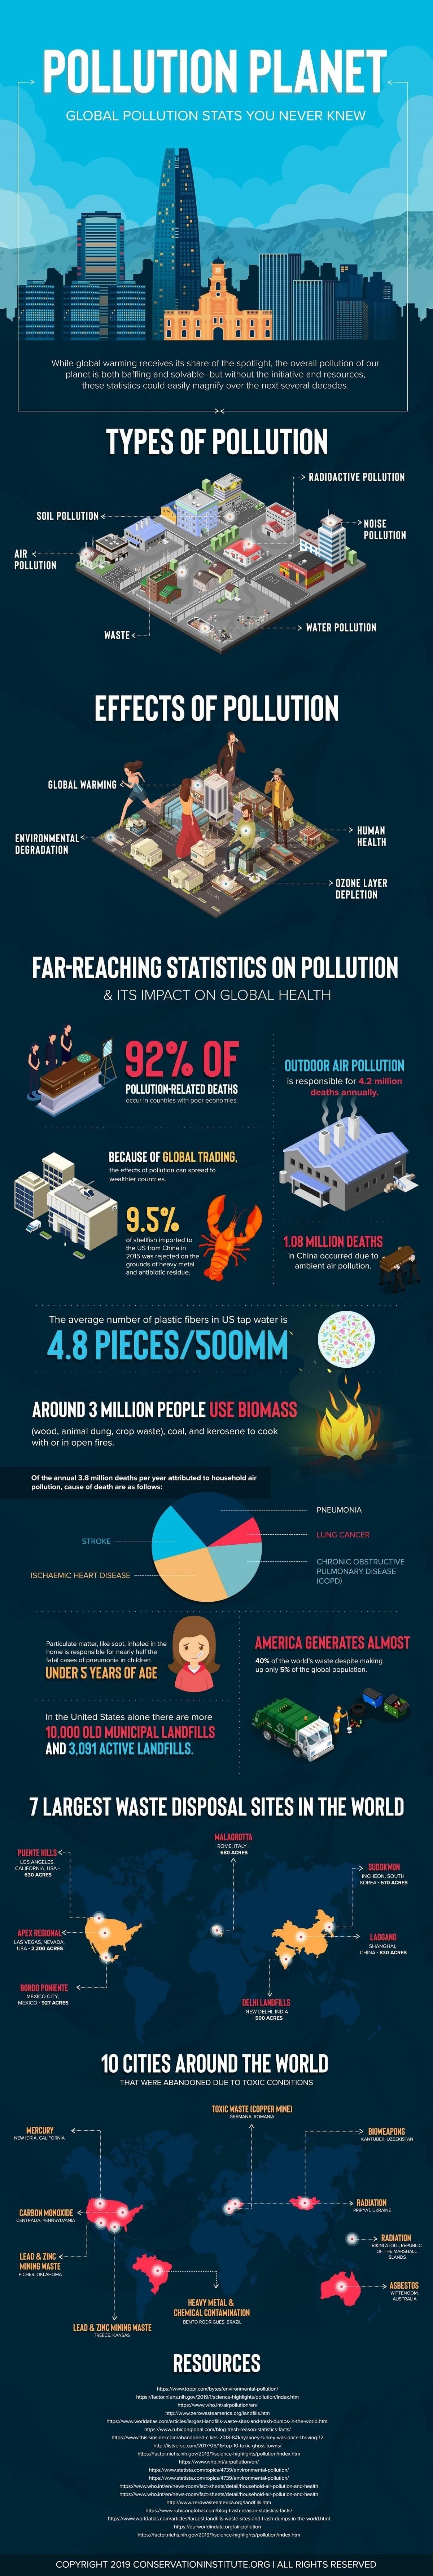 Pollution Plant: Global Pollution Stats You Never Knew #infographic